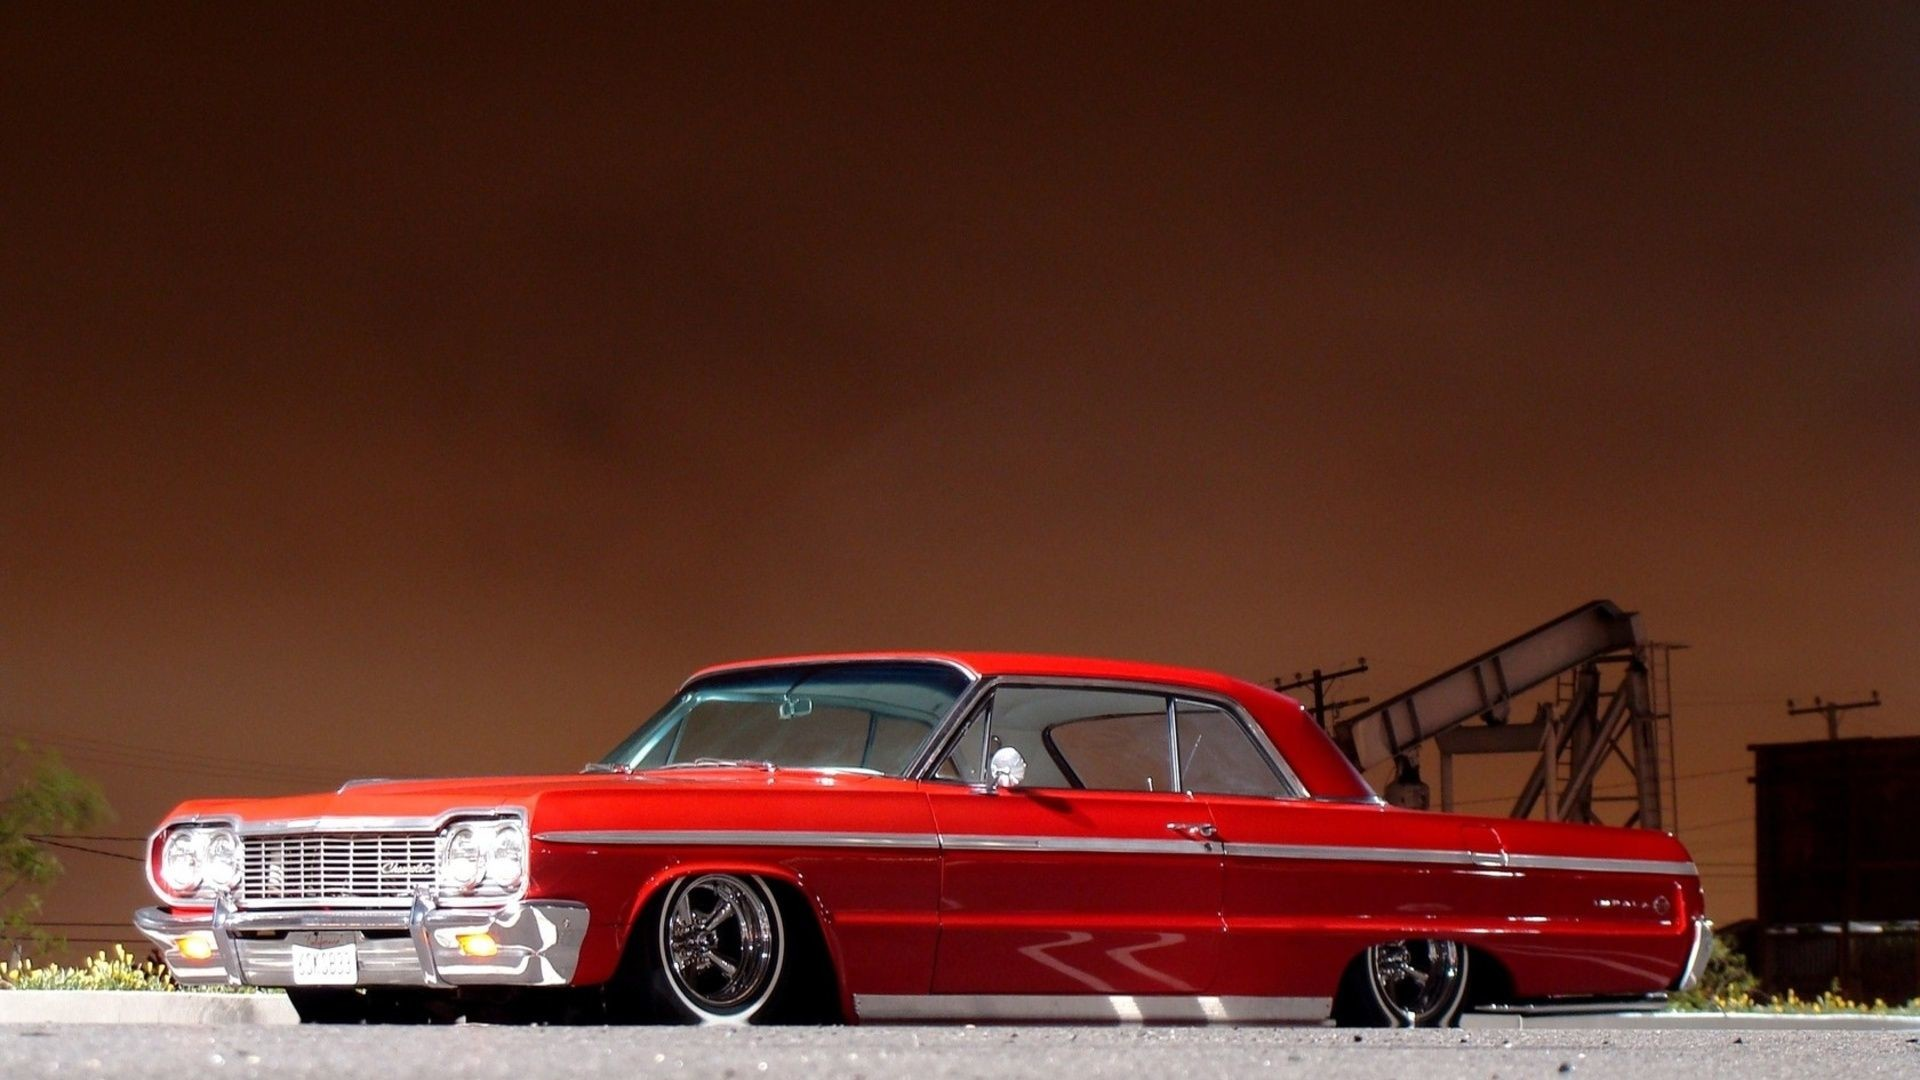 Res: 1920x1080, Chevrolet Impala Tuning Low Red Classic Muscle Cars Wallpaper .